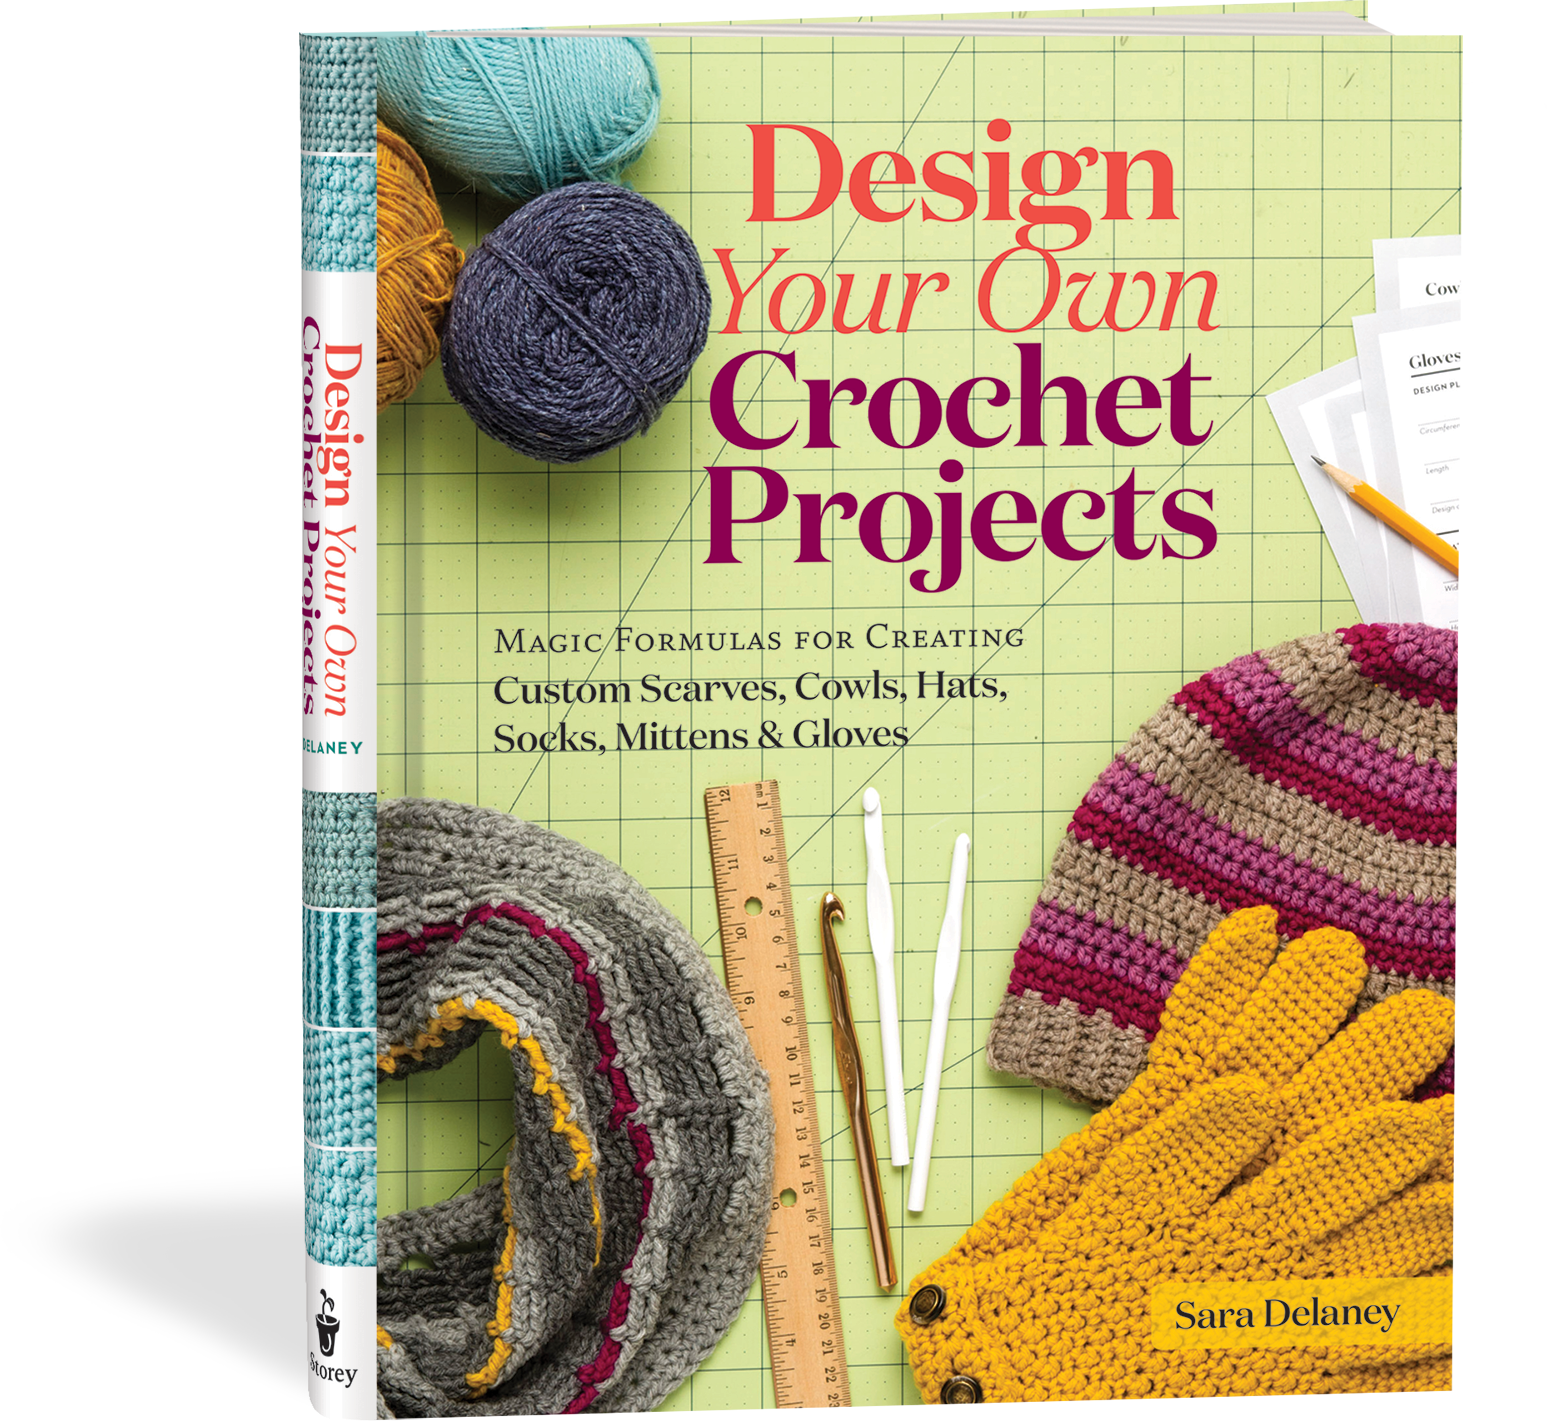 Design Your Own Crochet Projects - Workman Publishing 4deb6171993